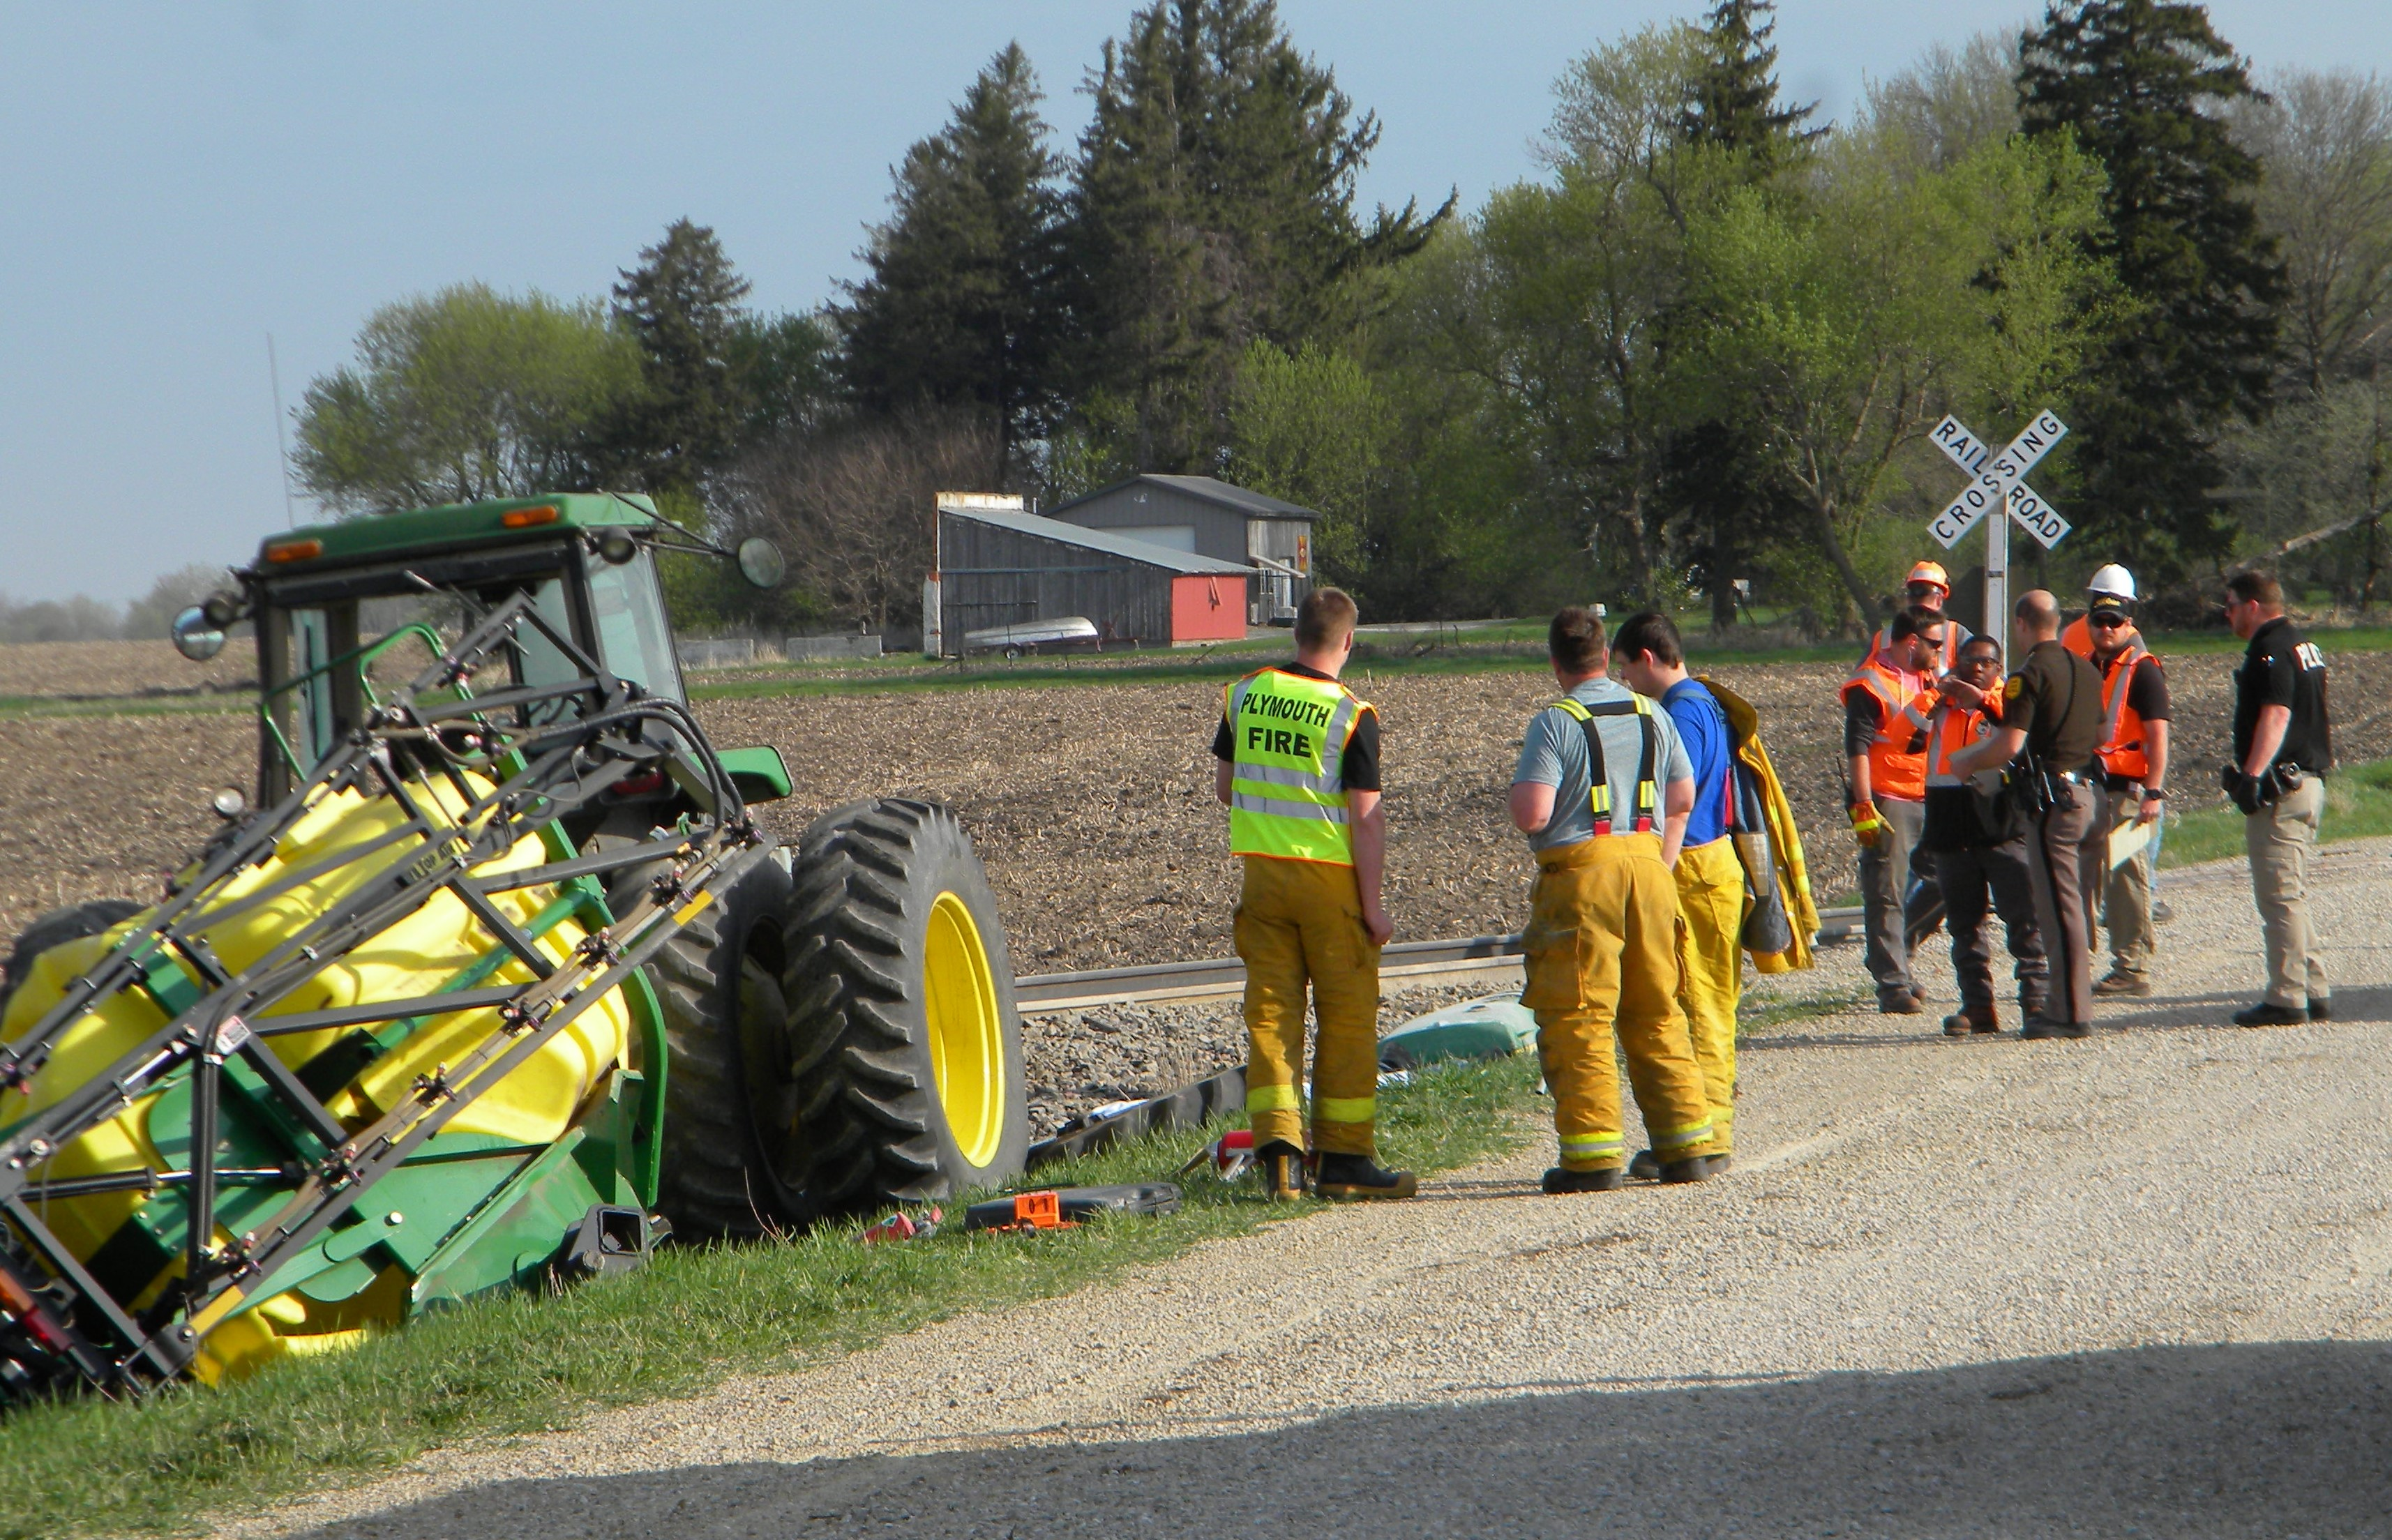 Tractor Pulling Train : Update fatality reported in worth county accident after